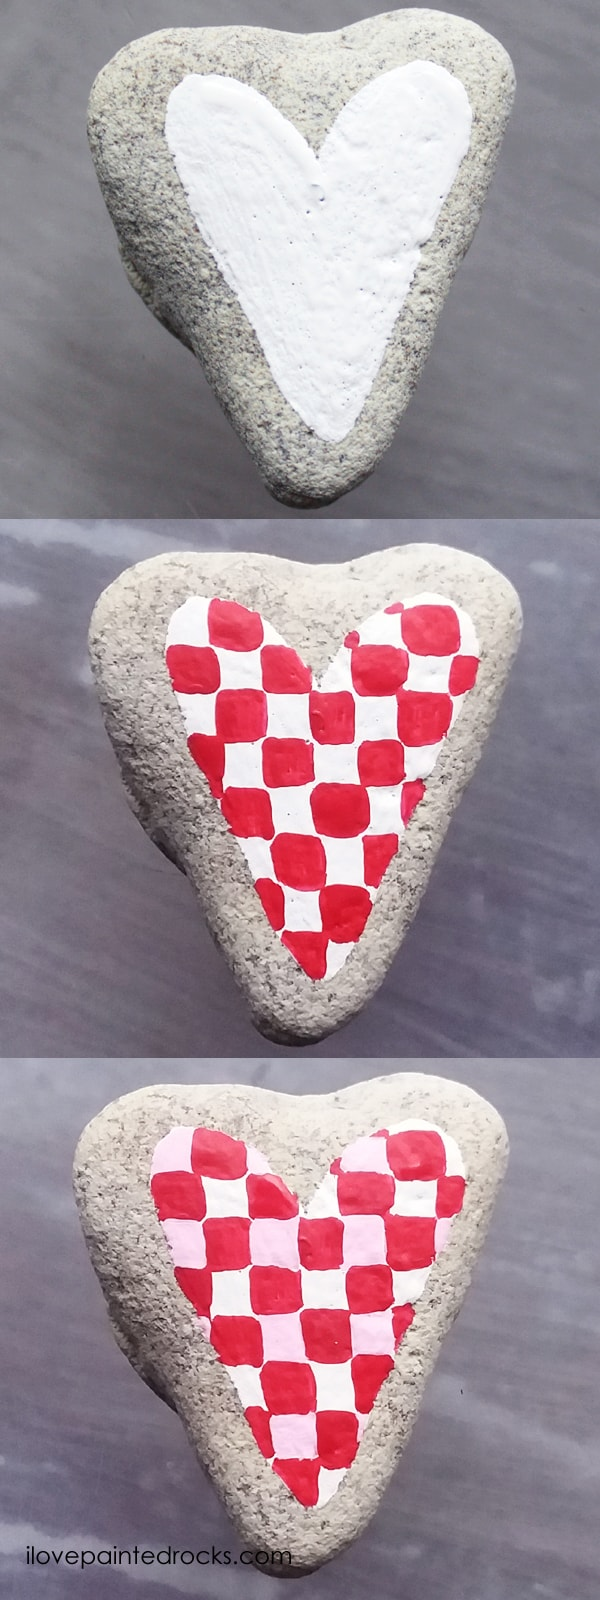 Easy rock painting ideas for Valentine's Day. I love all the painted rock tutorials in this post! Learn how to paint a buffalo check plaid inspired heart rock. #ilovepaintedrocks #rockpainting #paintedrocks #valentinescraft #easycraft #kidscraft #rockpaintingideas